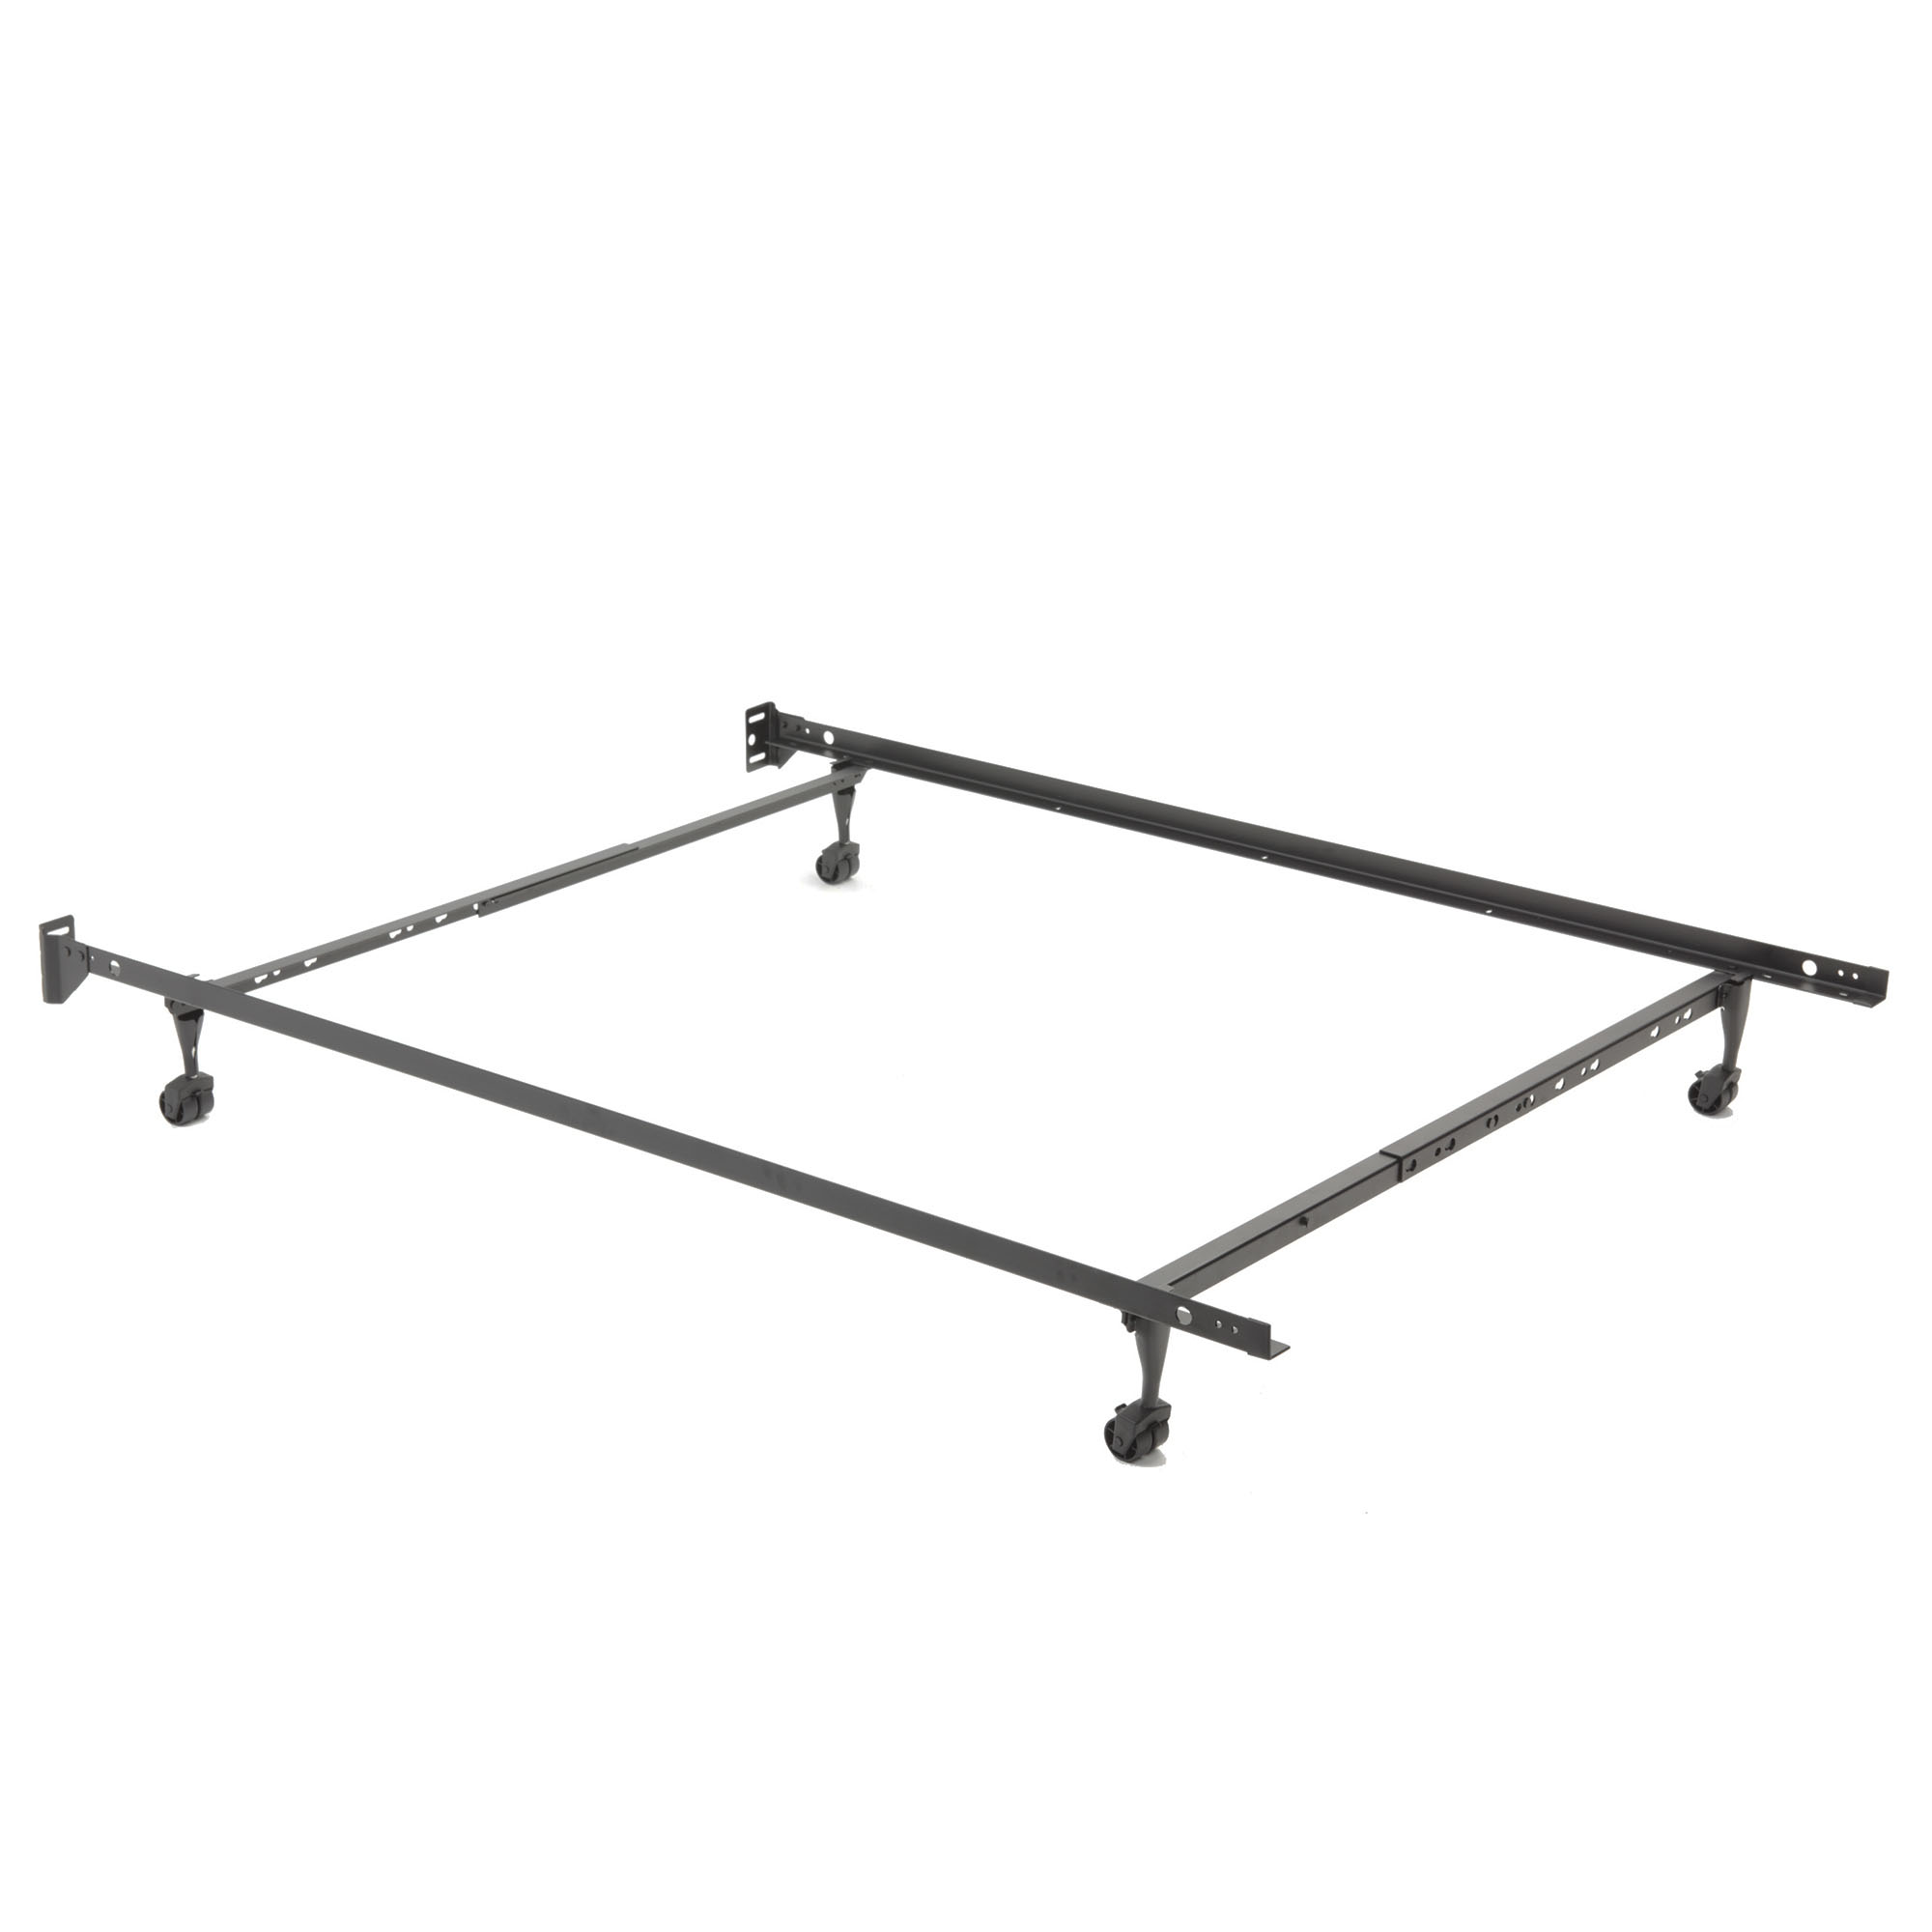 421467Fashion Bed Group Restmore Adjustable 45R Bed Frame with Fixed ...